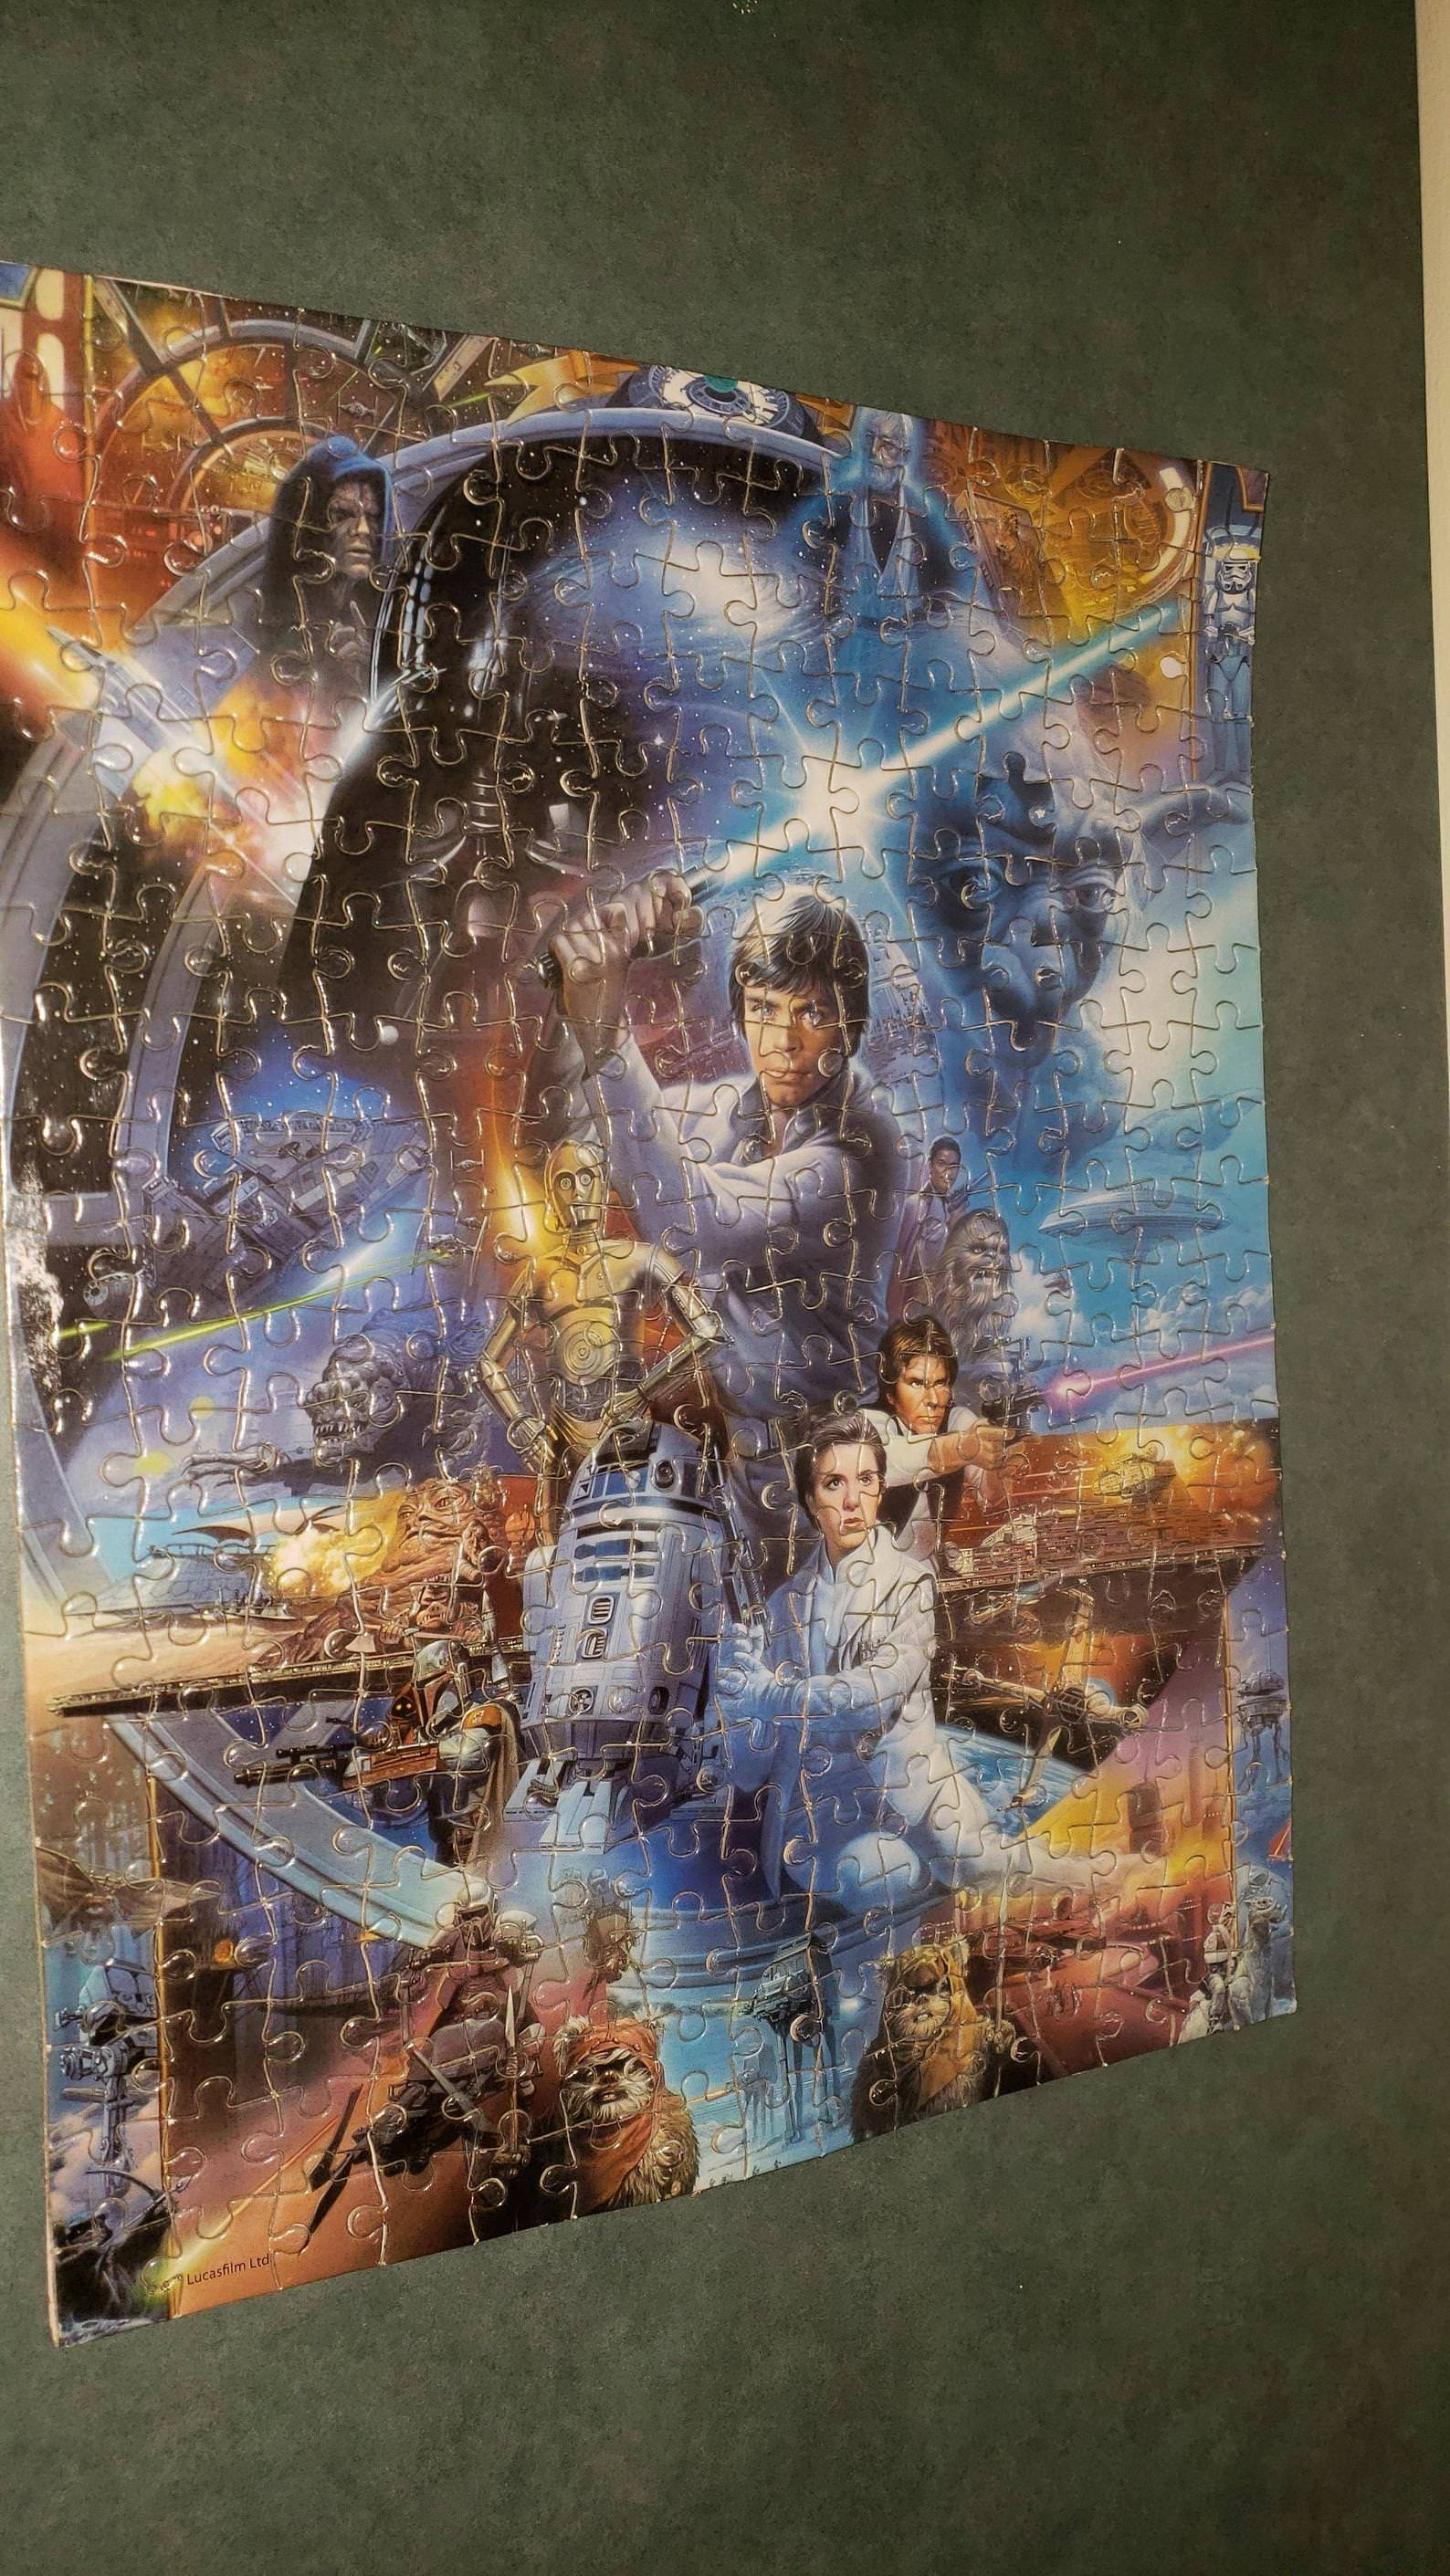 This puzzle posted in the Kid Zone at my gym